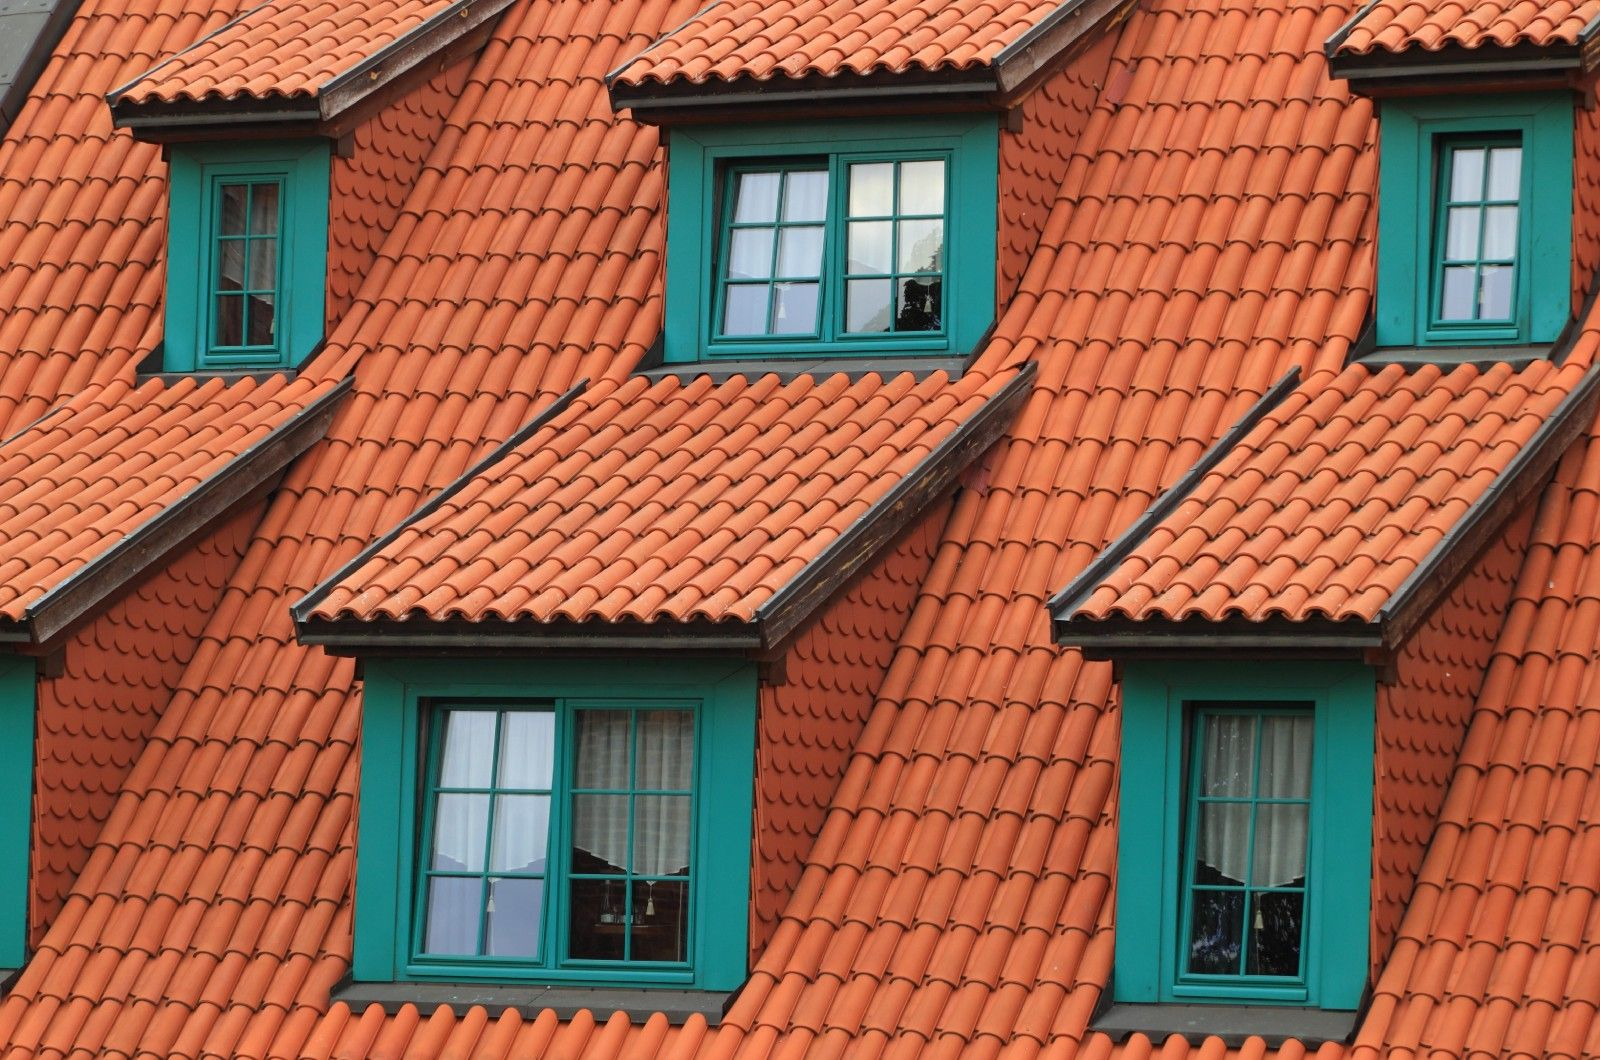 Southeastern Premier Roofing Services Roofing Roof Repair Roofing Contractors